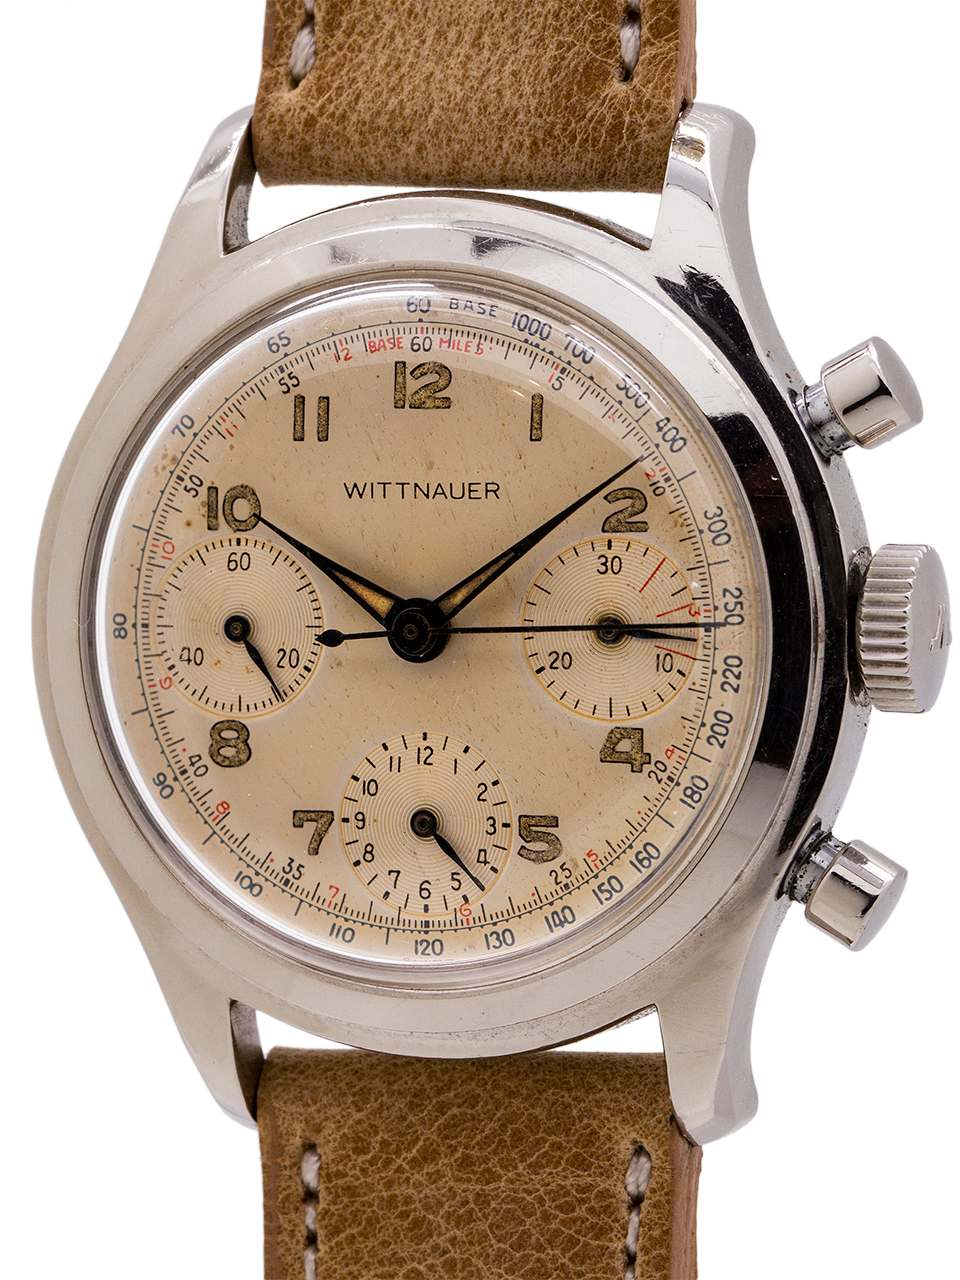 Wittnauer Watch Value >> Wittnauer Vintage Chronograph Circa 1950 S Valjoux 72